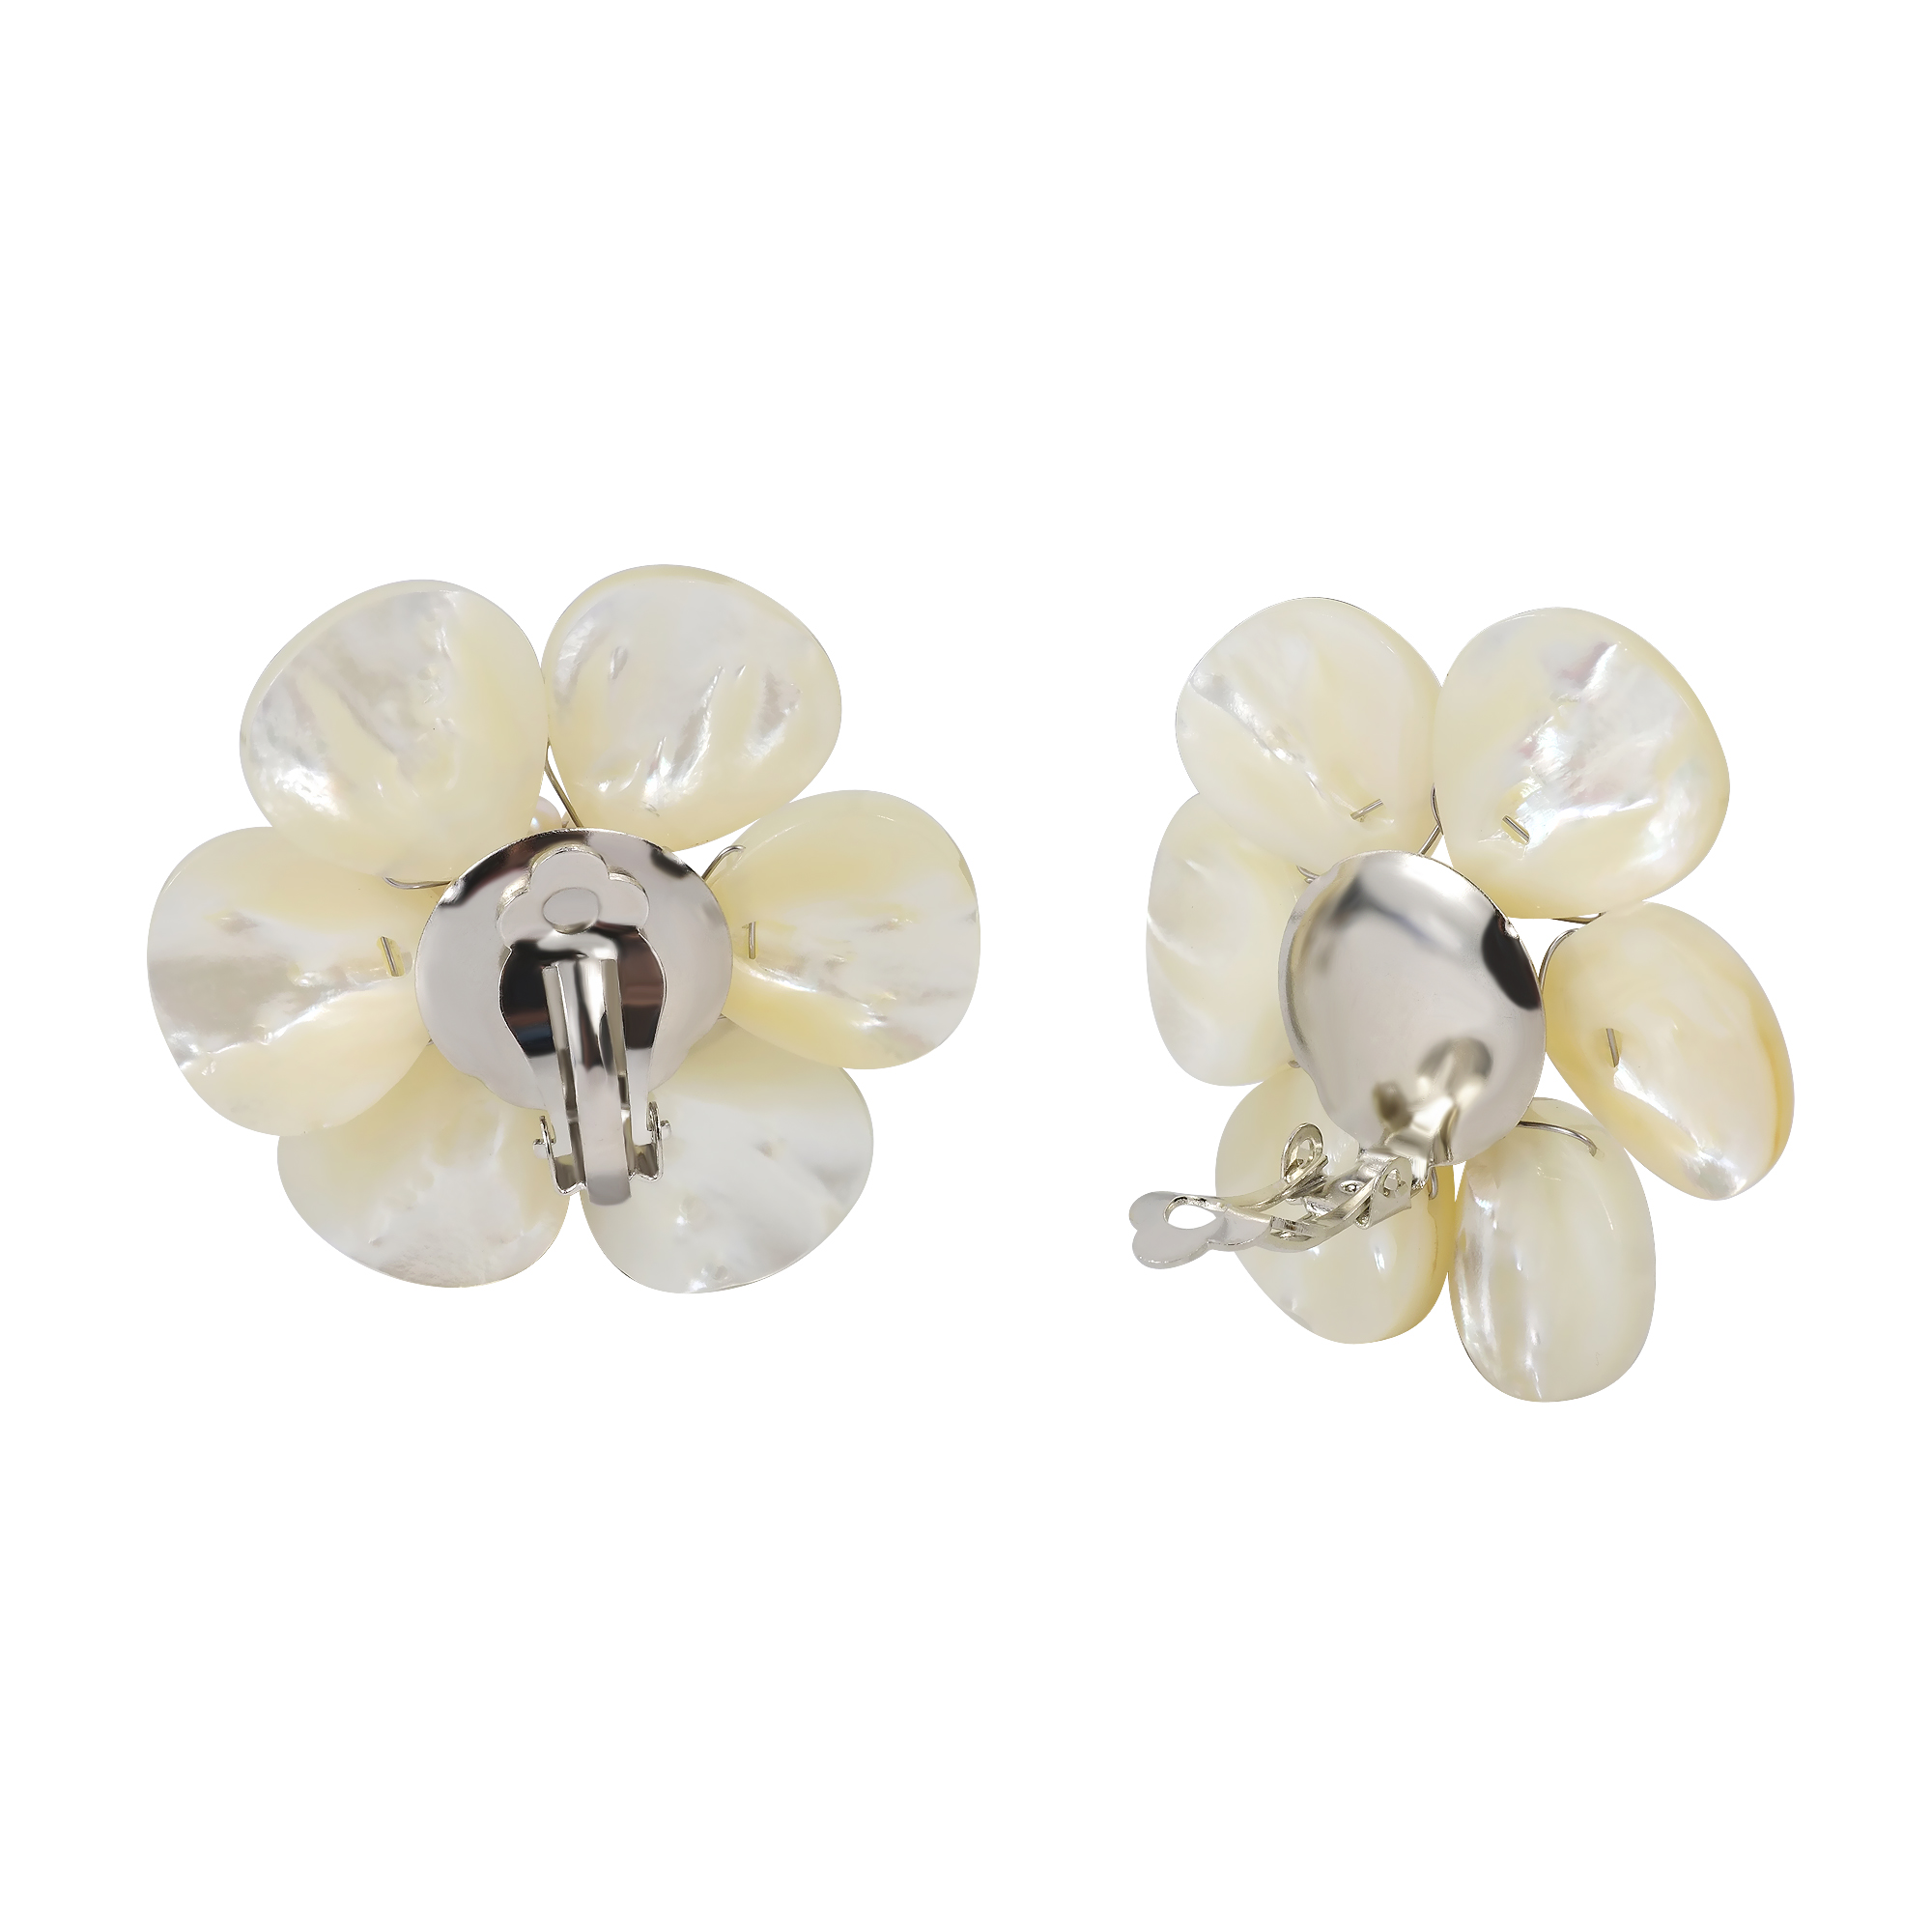 Flower Power With Lustrous White Mother Of Pearl Shell, And Natural  Freshwater Pearls These Handcrafted Earrings Are Versatile To Fit Any  Style And A Great